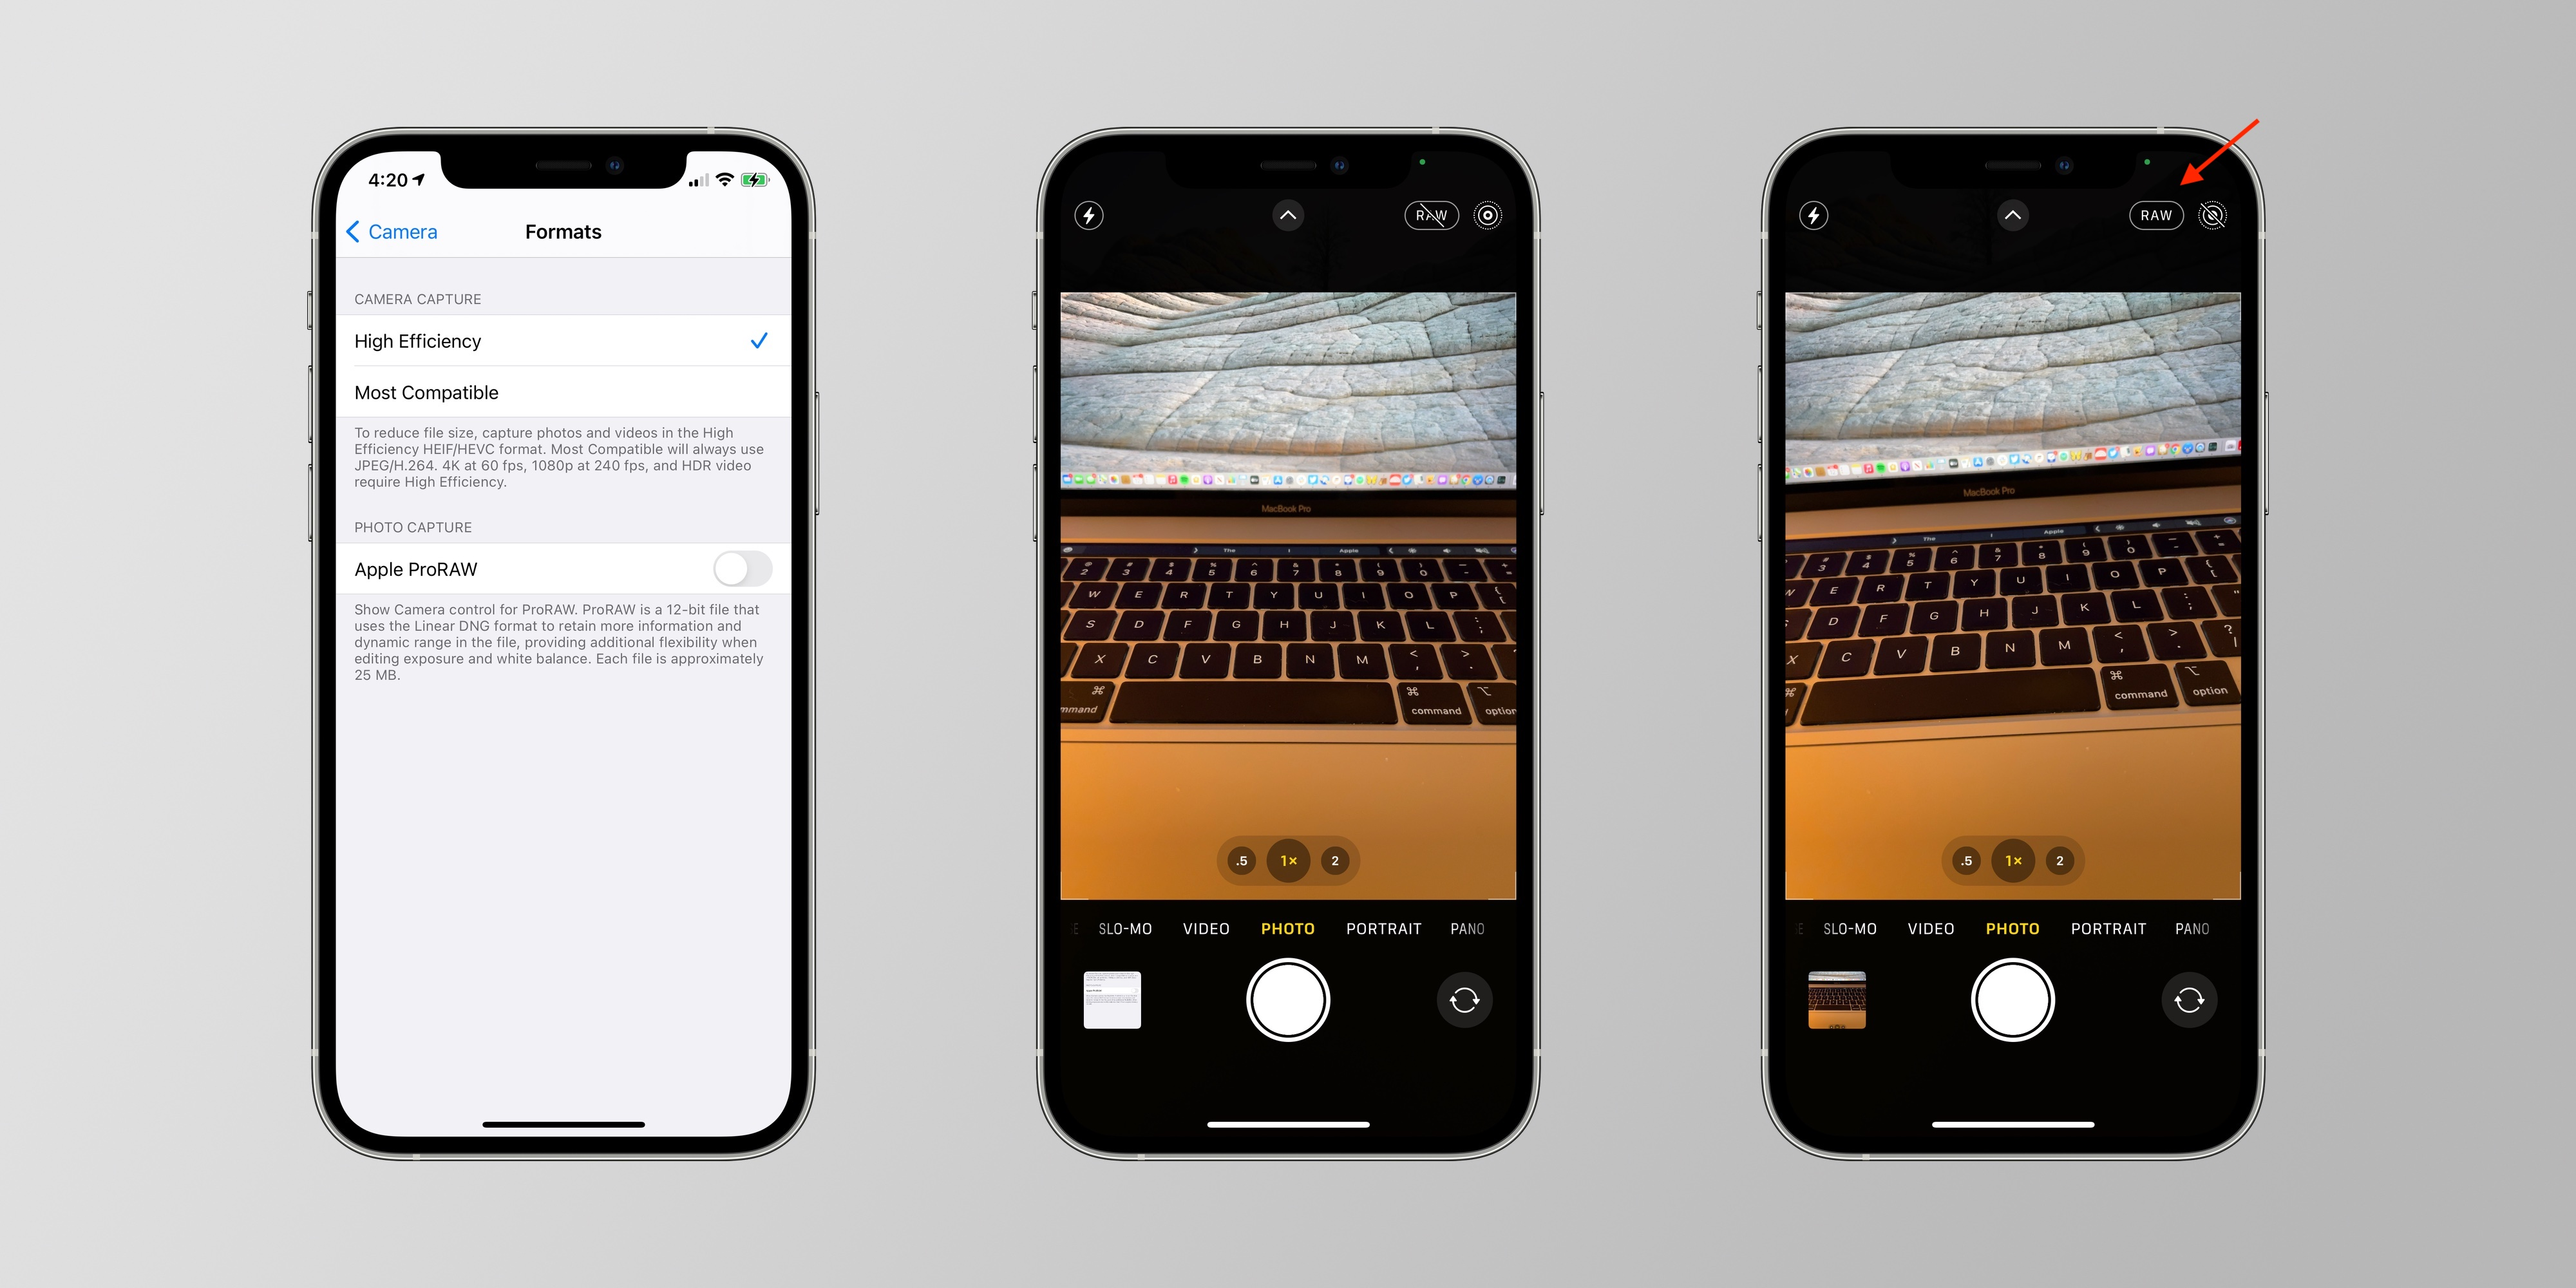 Ios 14 3 Adds New Proraw Photo Format On Iphone 12 Pro And Iphone 12 Pro Max 9to5mac